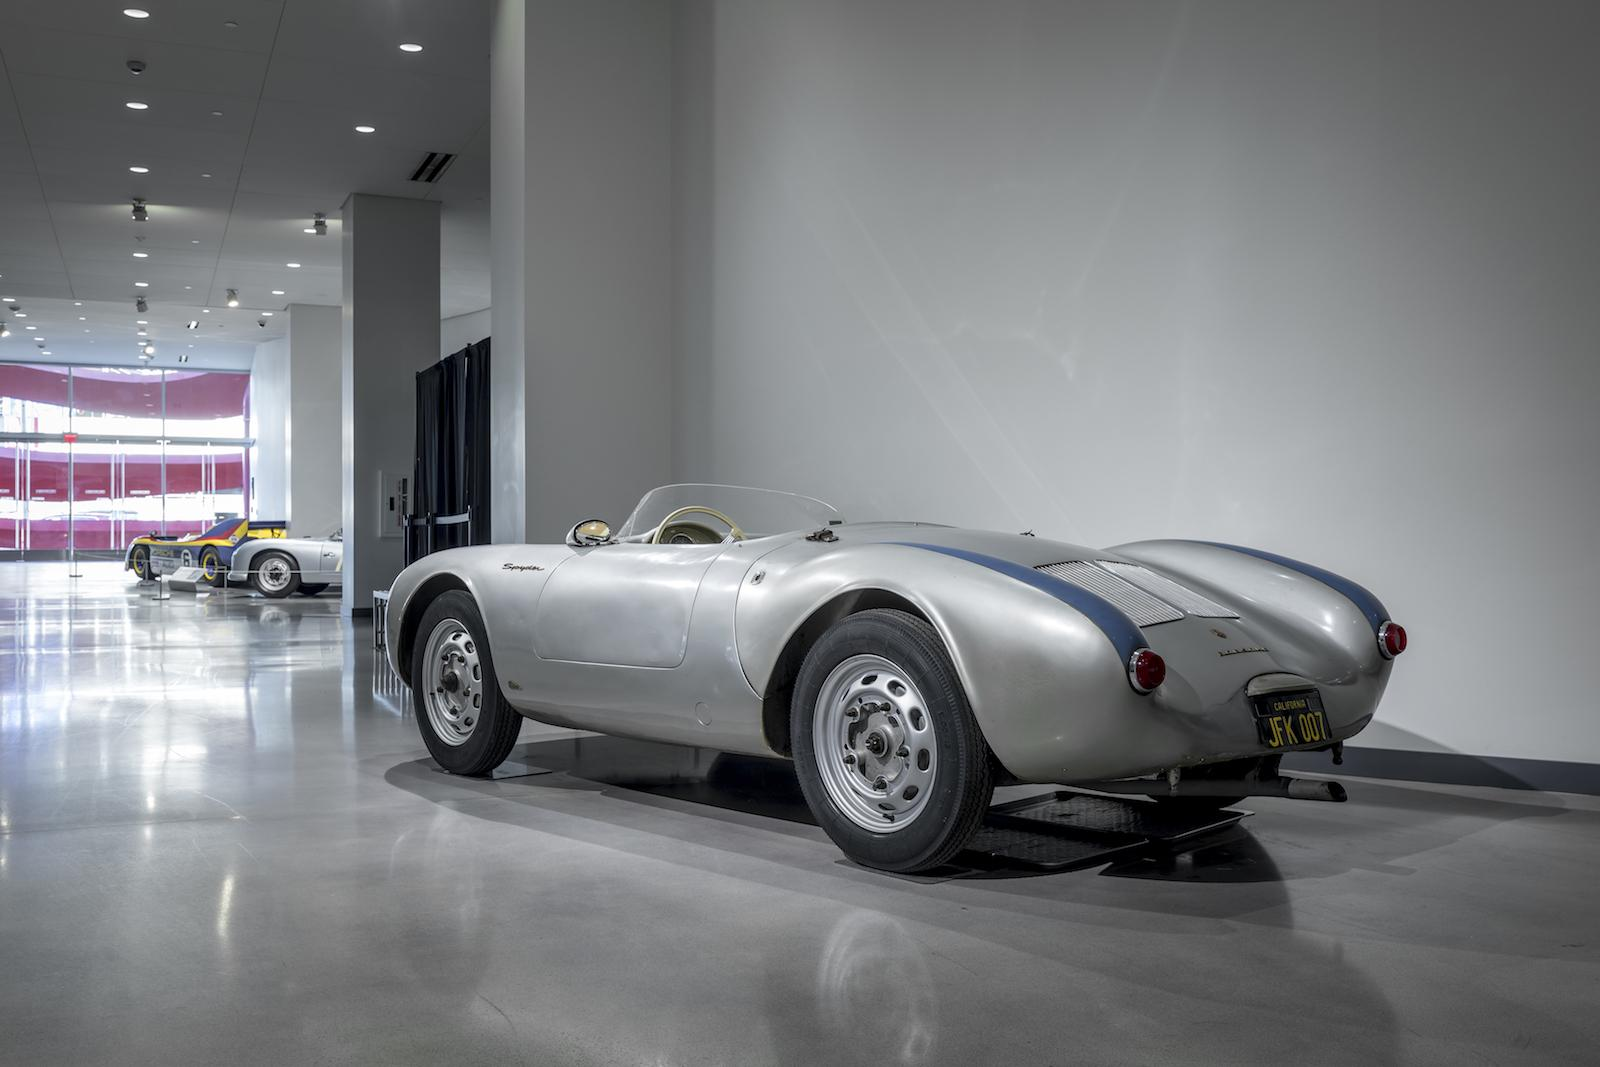 Porsche Introduced The 550/1500 RS Spyder At The 1953 Paris Auto Show.  Designed Specifically For Racing, 550 Spyders Met With Success In The Hands  Of Both ...